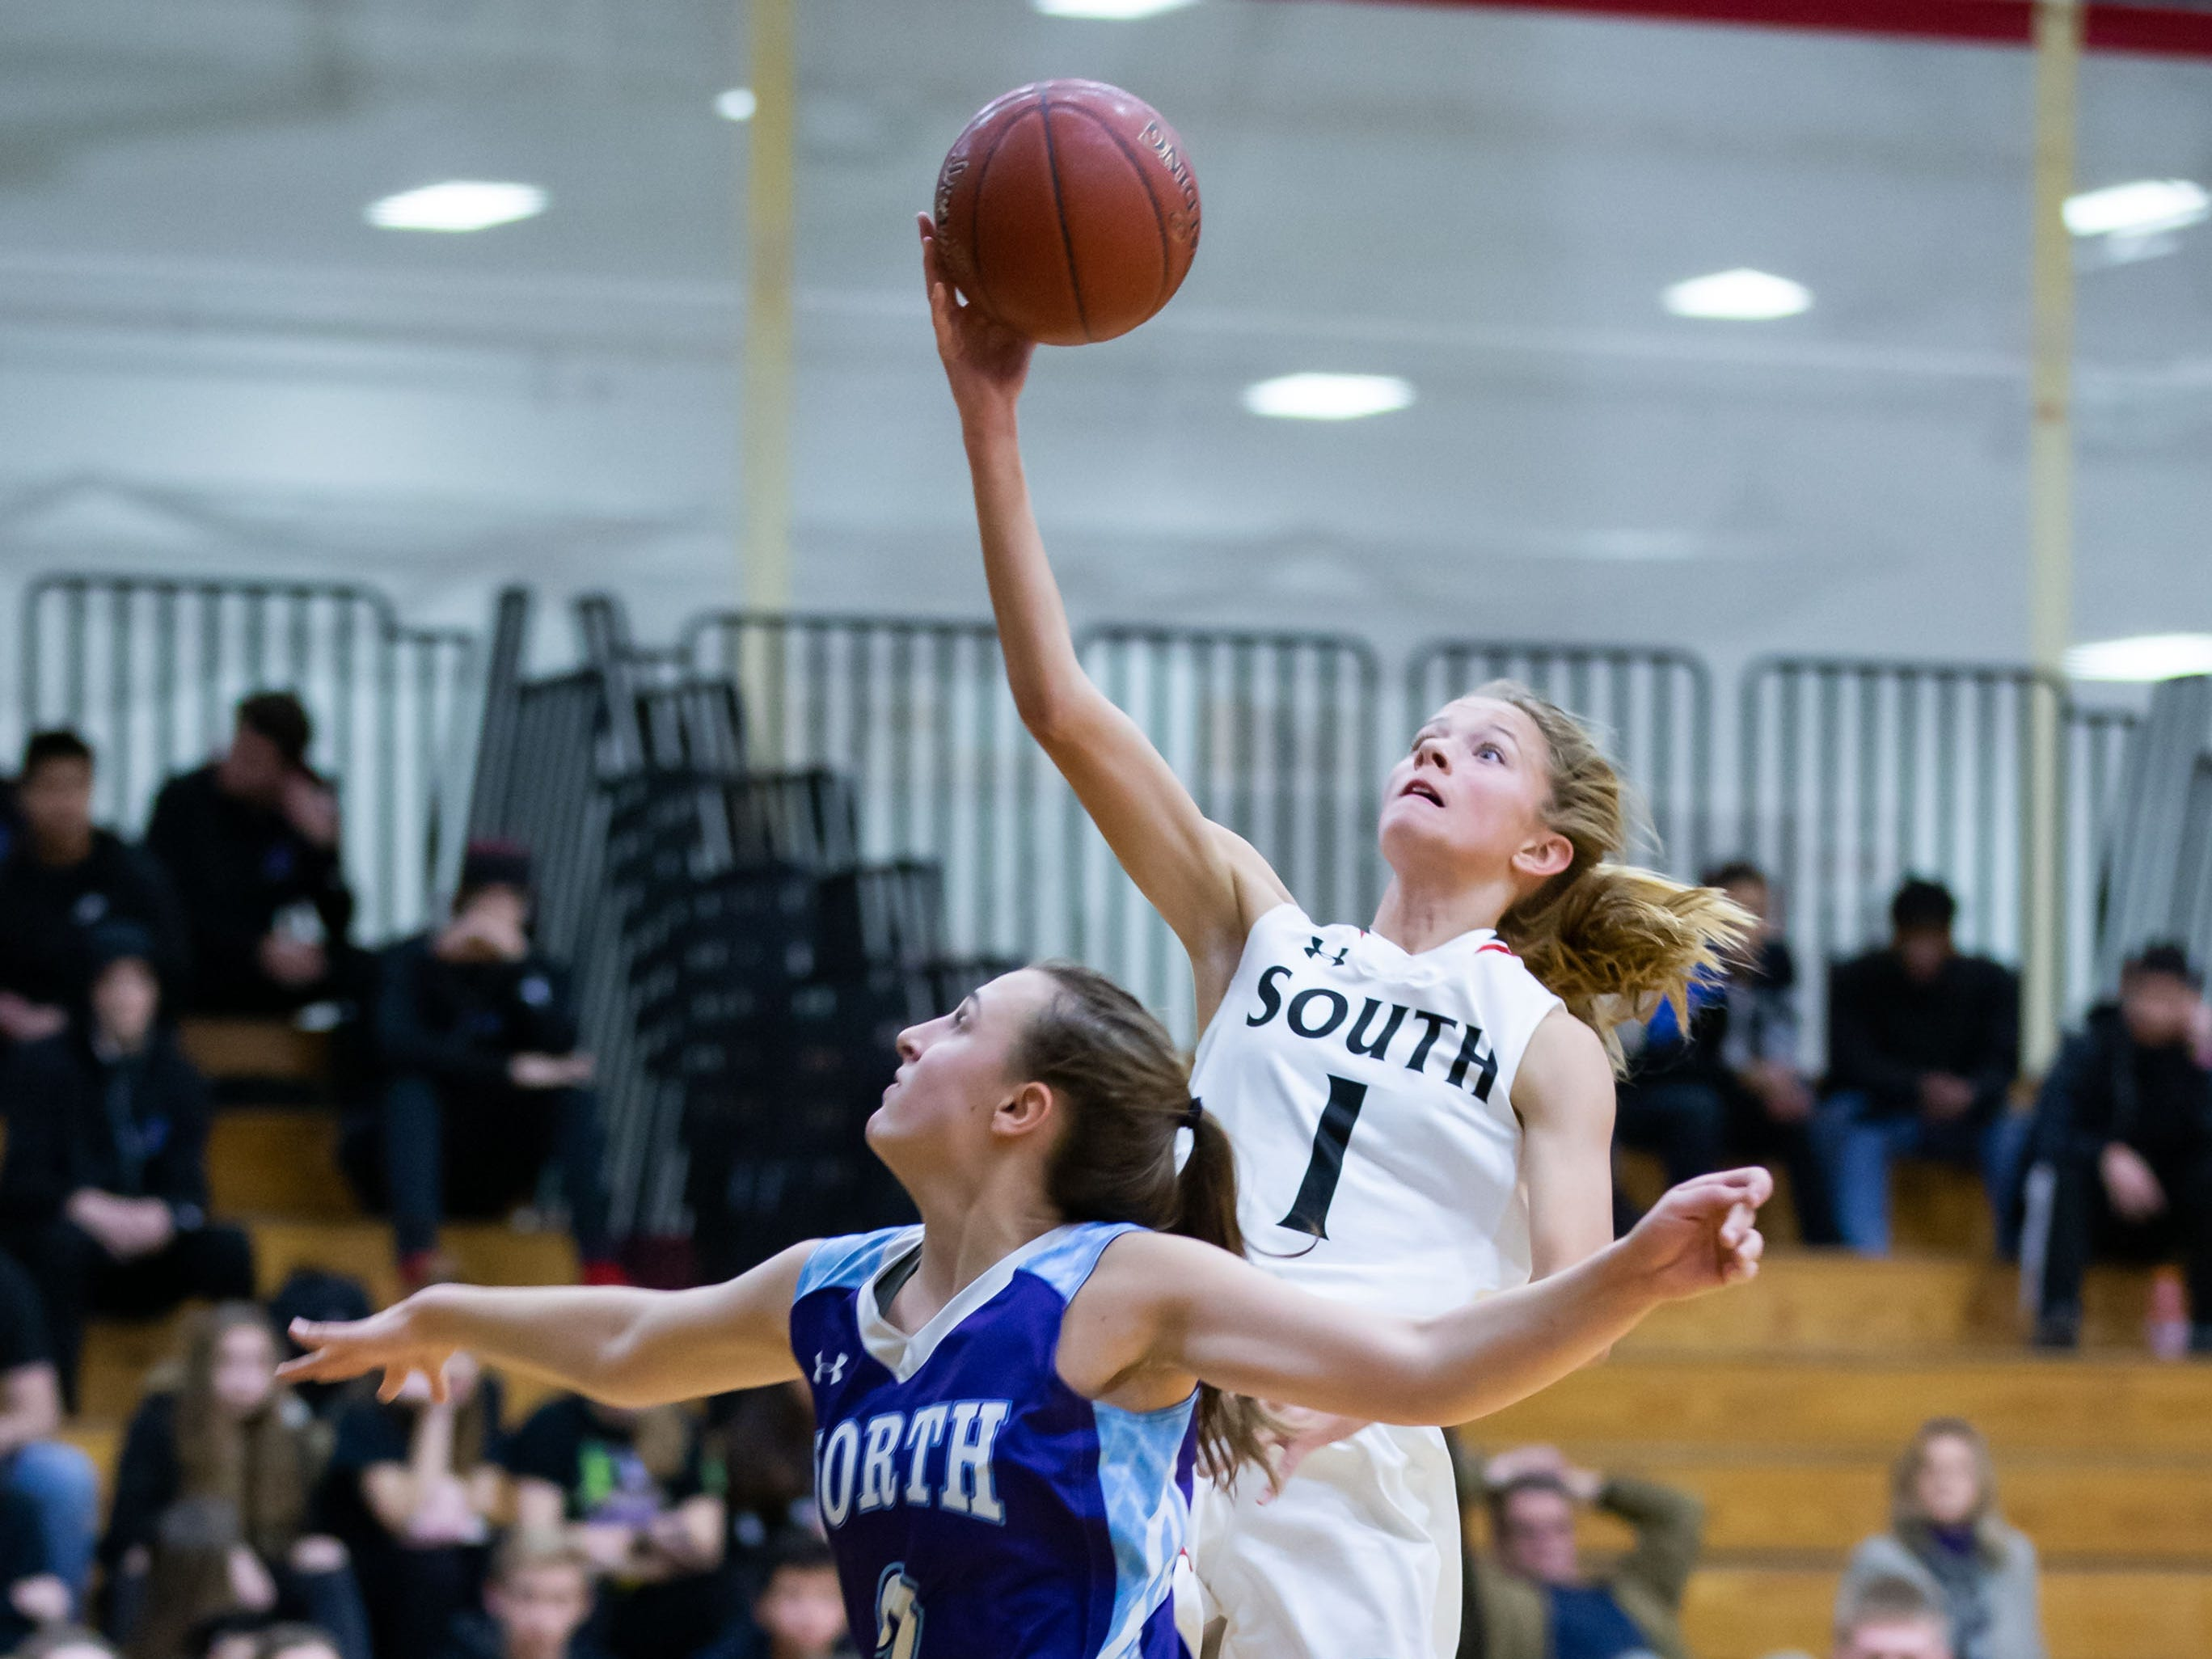 Waukesha South freshman Ashlyn Skinner-Barrett (1) drives in for a layup over Waukesha North's Olivia Osborn (2) at South on Tuesday, Dec. 4, 2018.